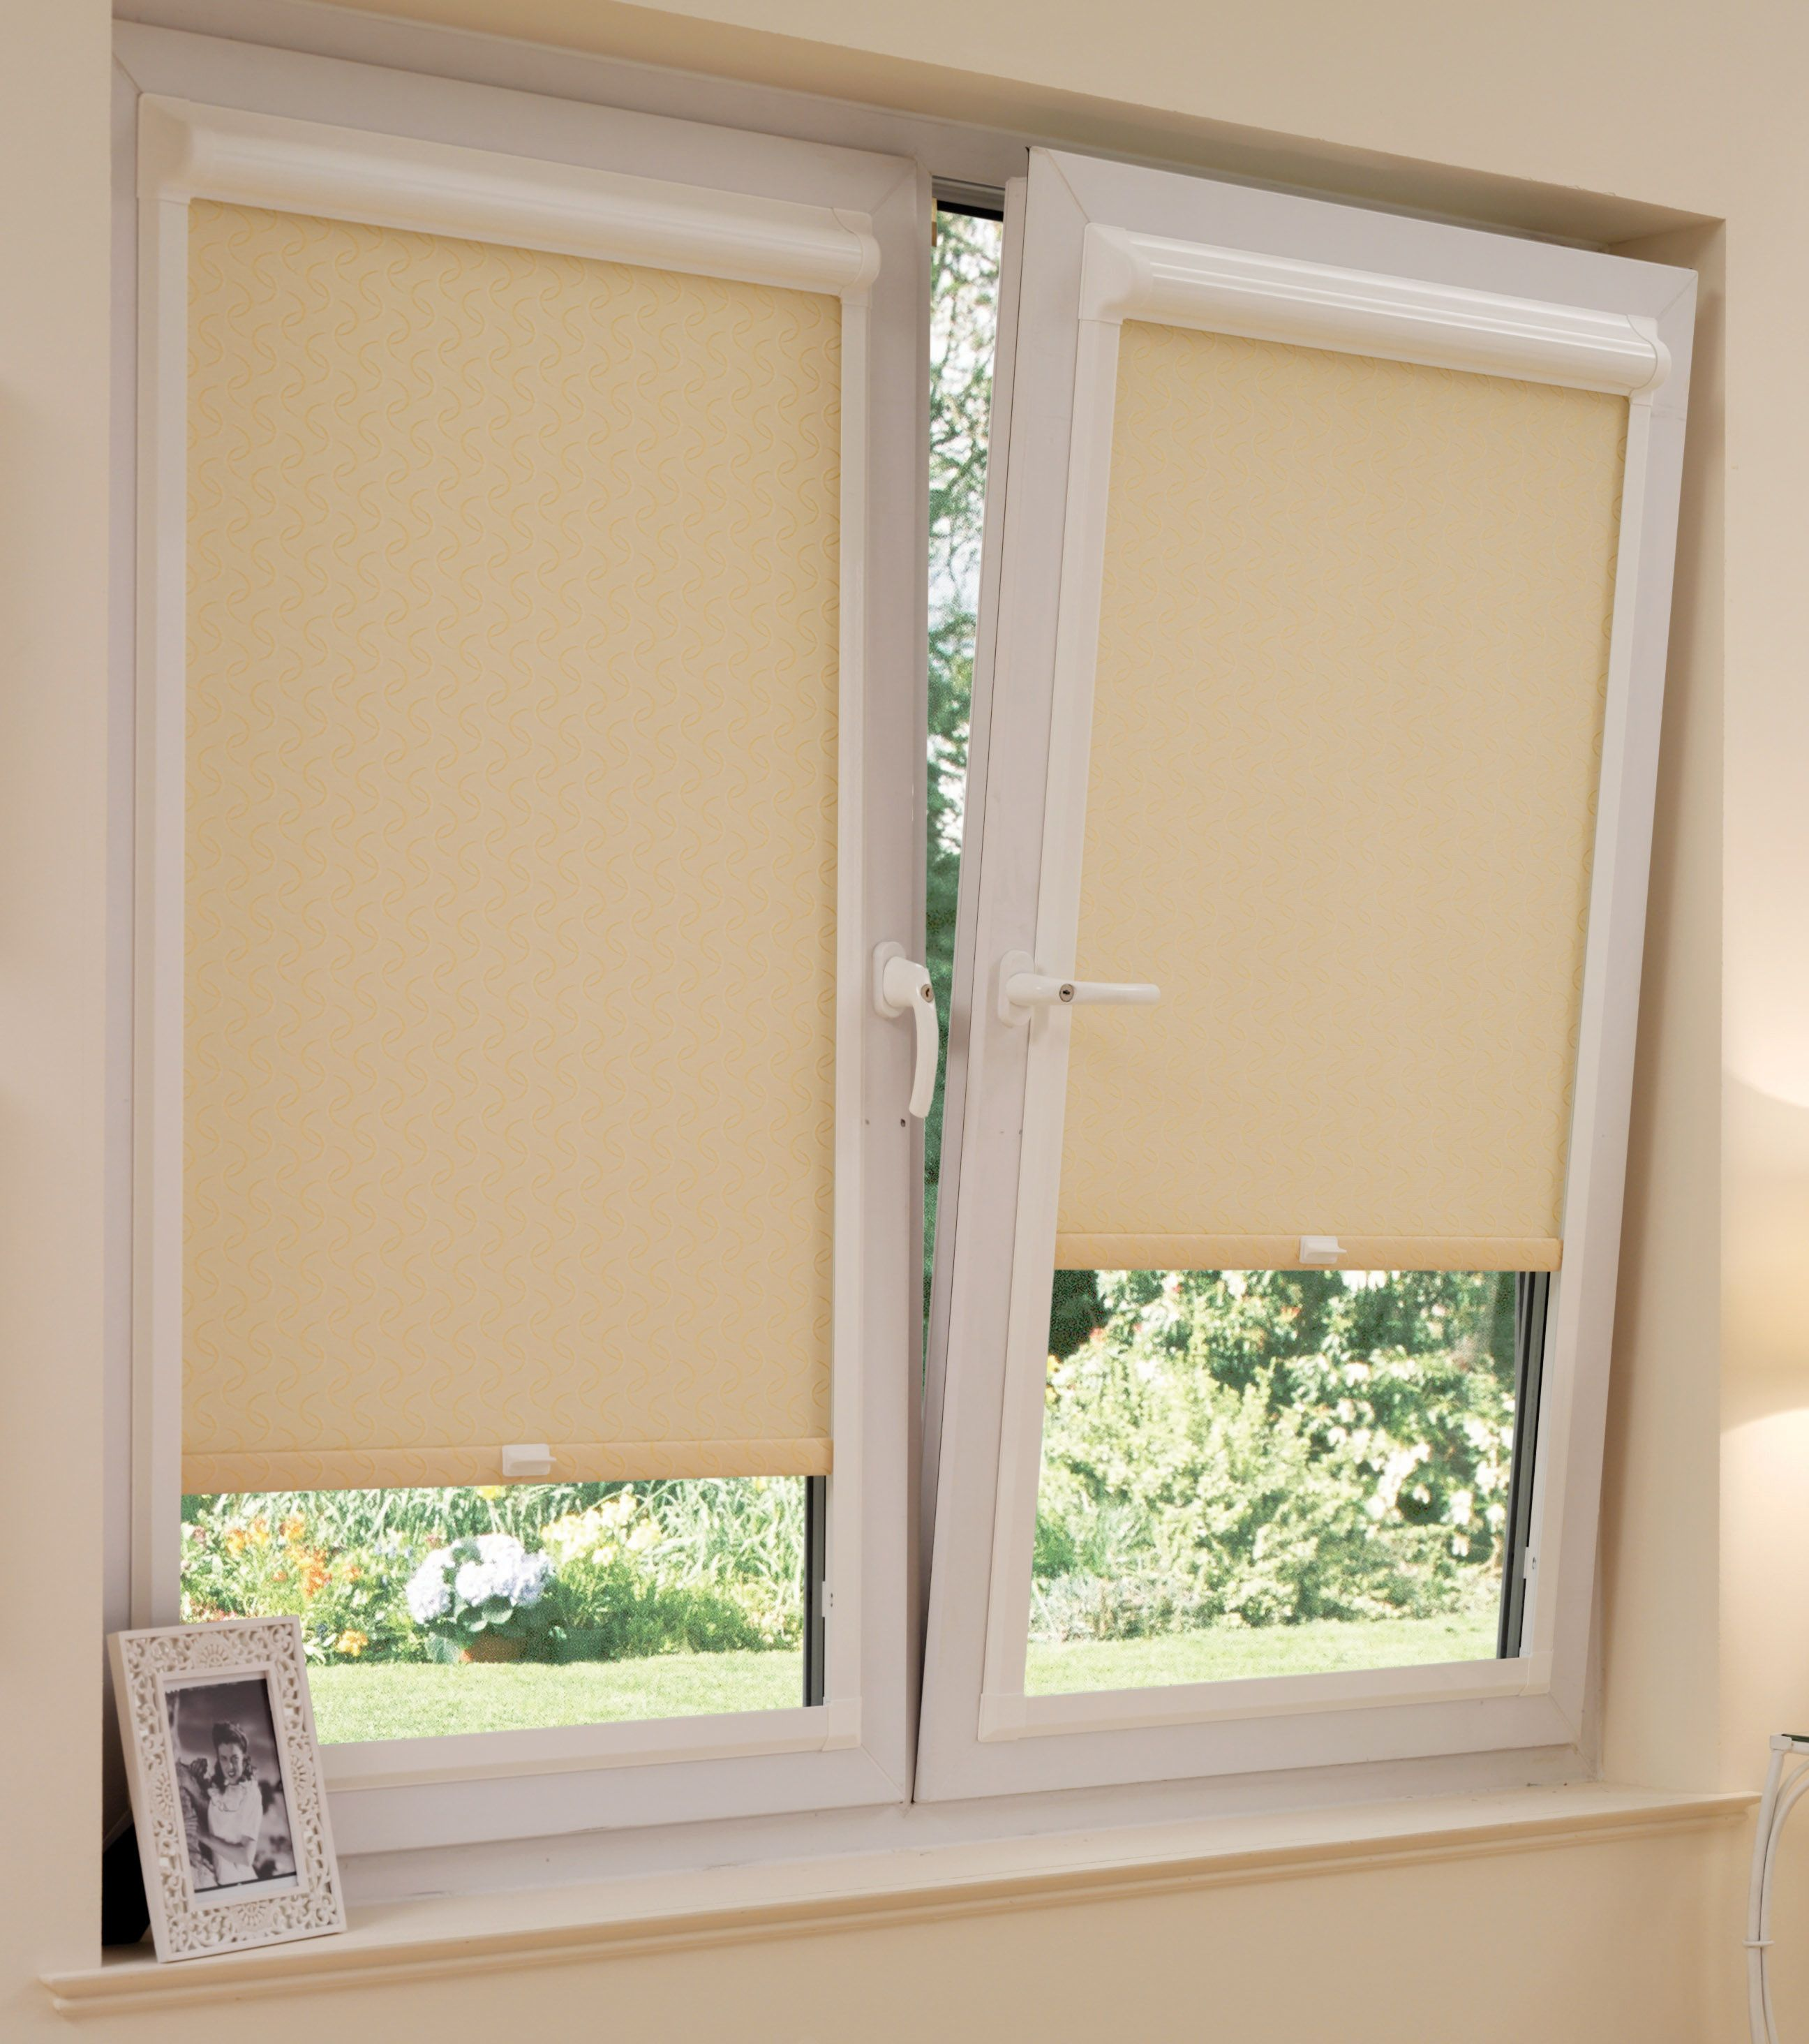 x brackets download shade how roller blinds to image roman parts cordless window installing home levolor shorten blind idea